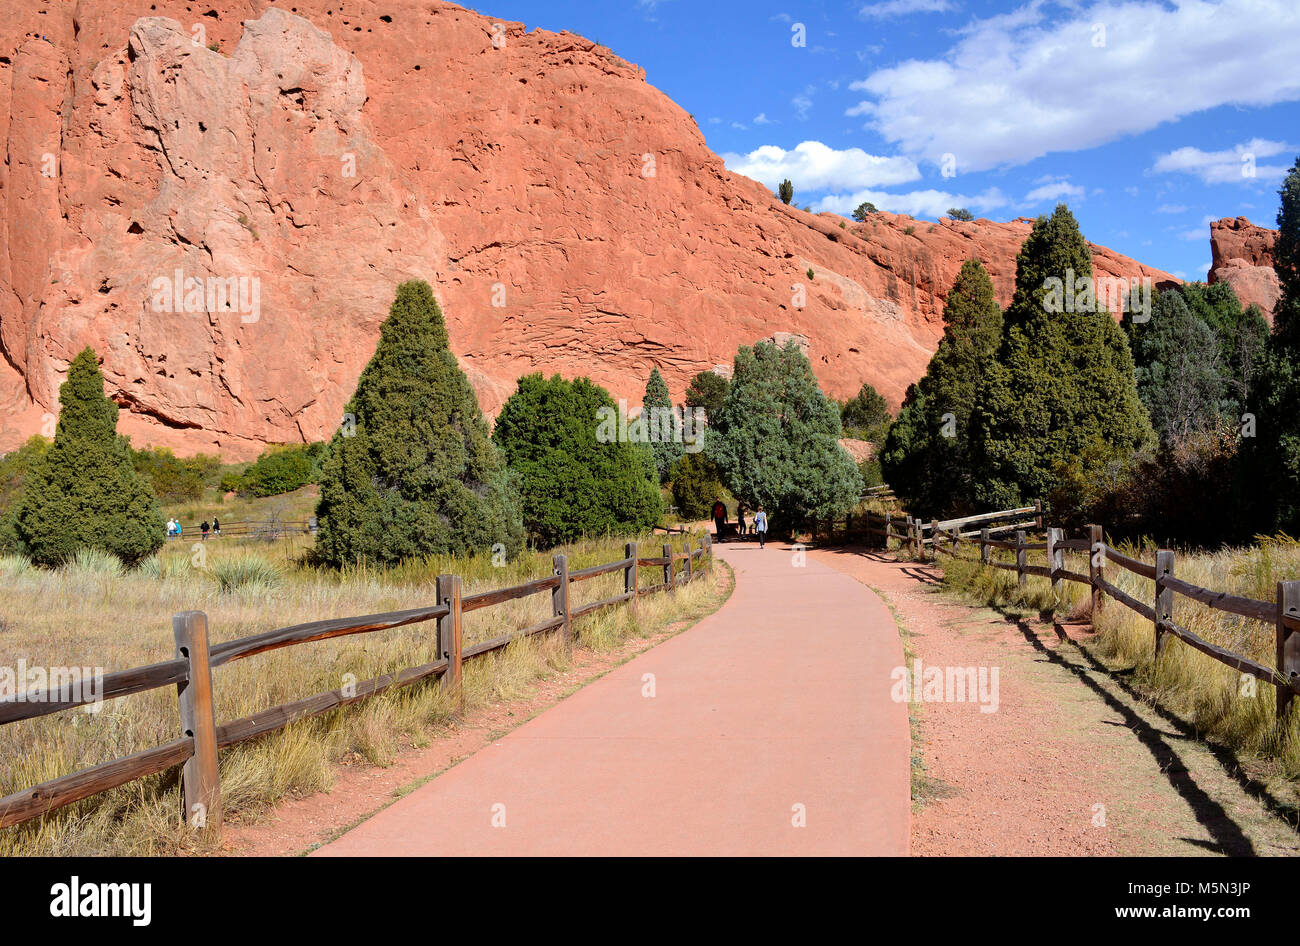 Pathway to Garden of the Gods - Stock Image